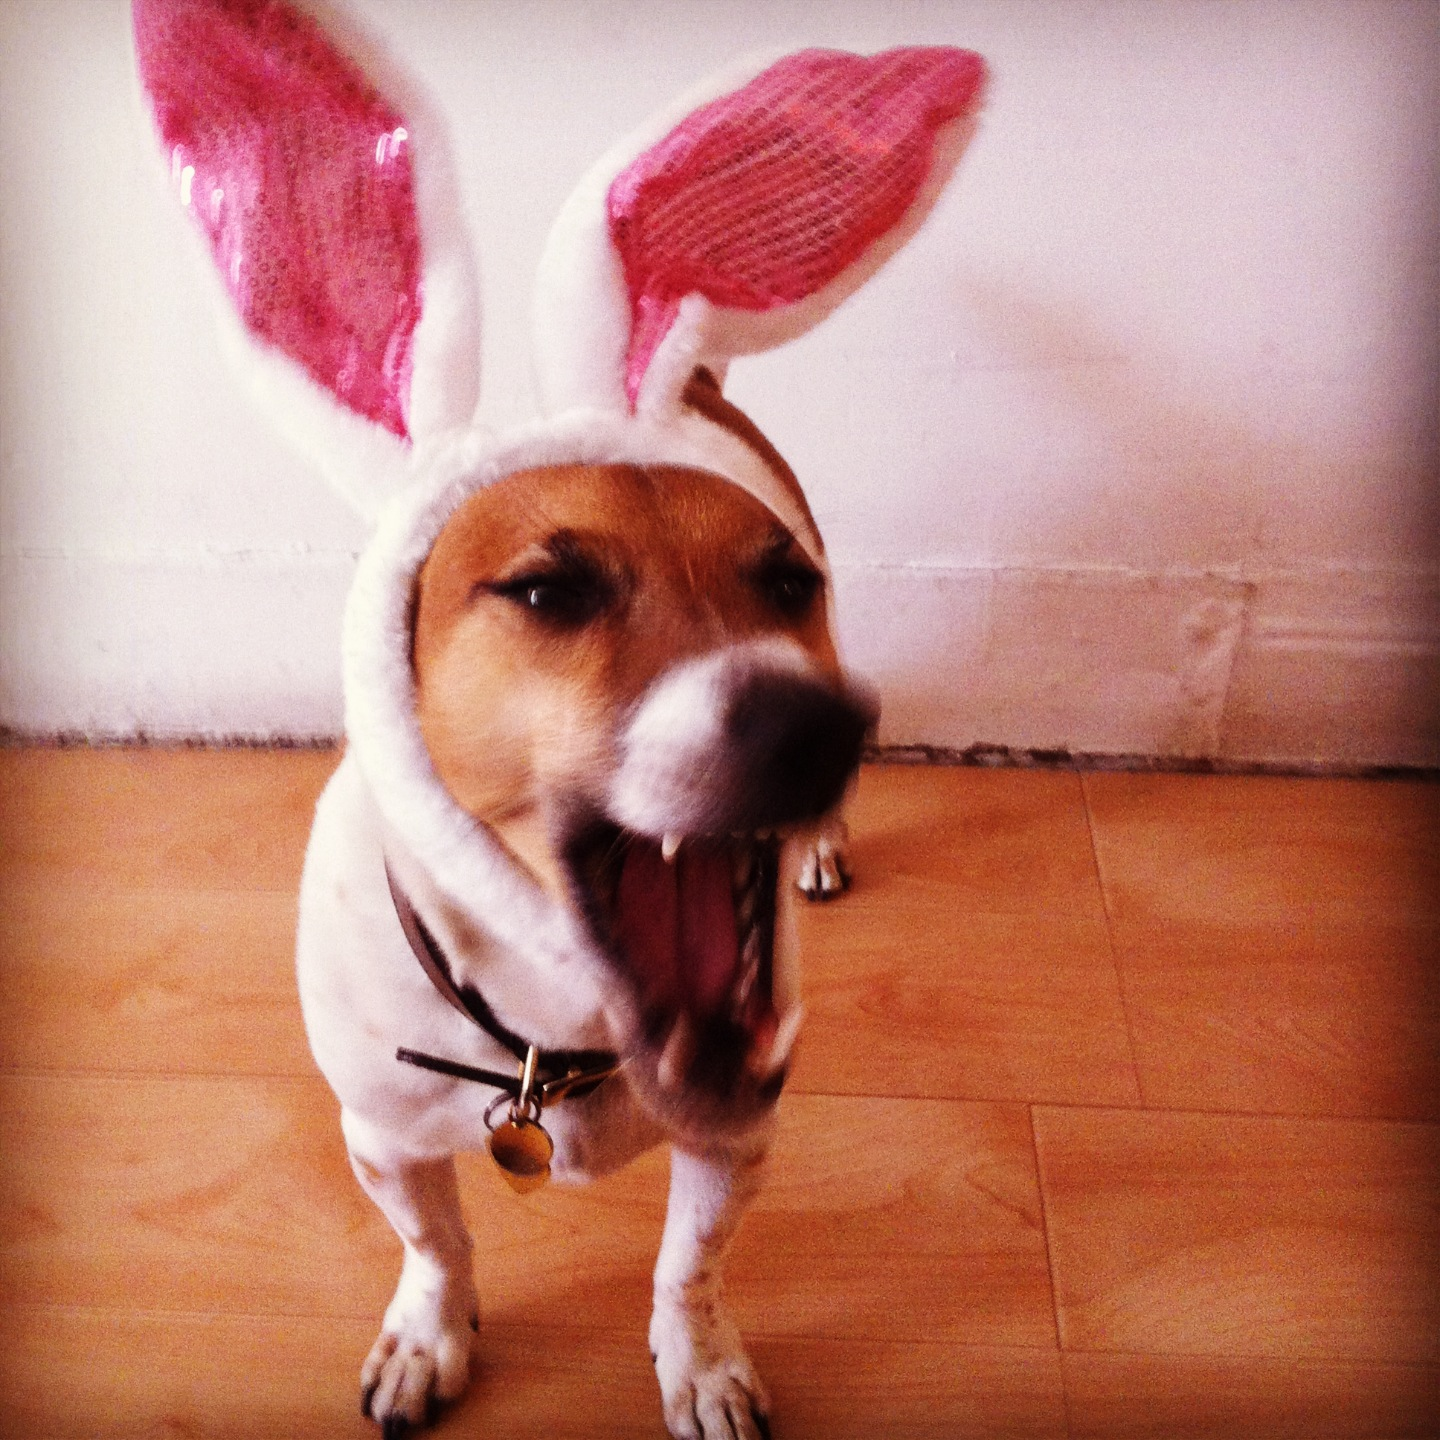 Scooter in Bunny Ears